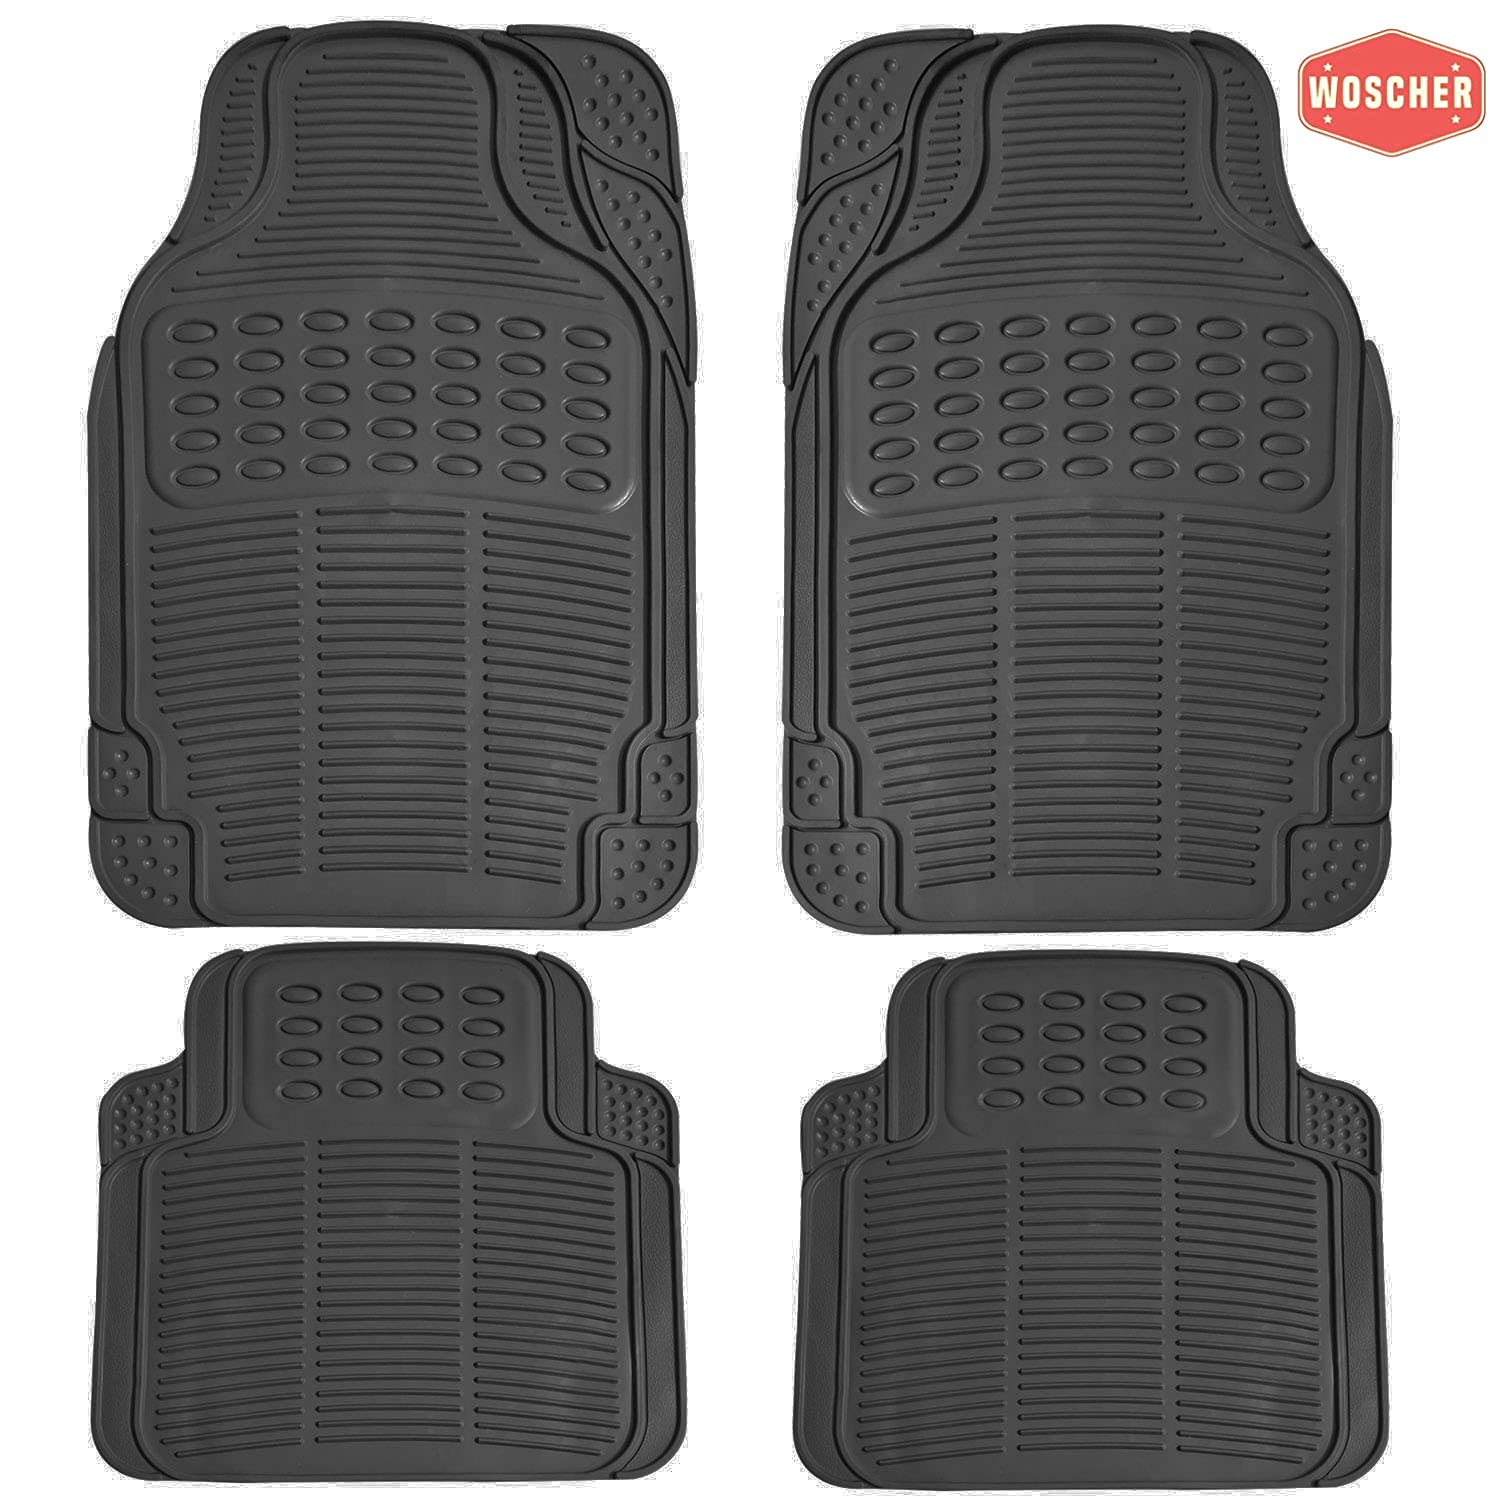 woscher-7904-felxtough-all-season-rubber-floor-car-mat-for-car-suv-universal-self-cut-to-perfectly-fit-black